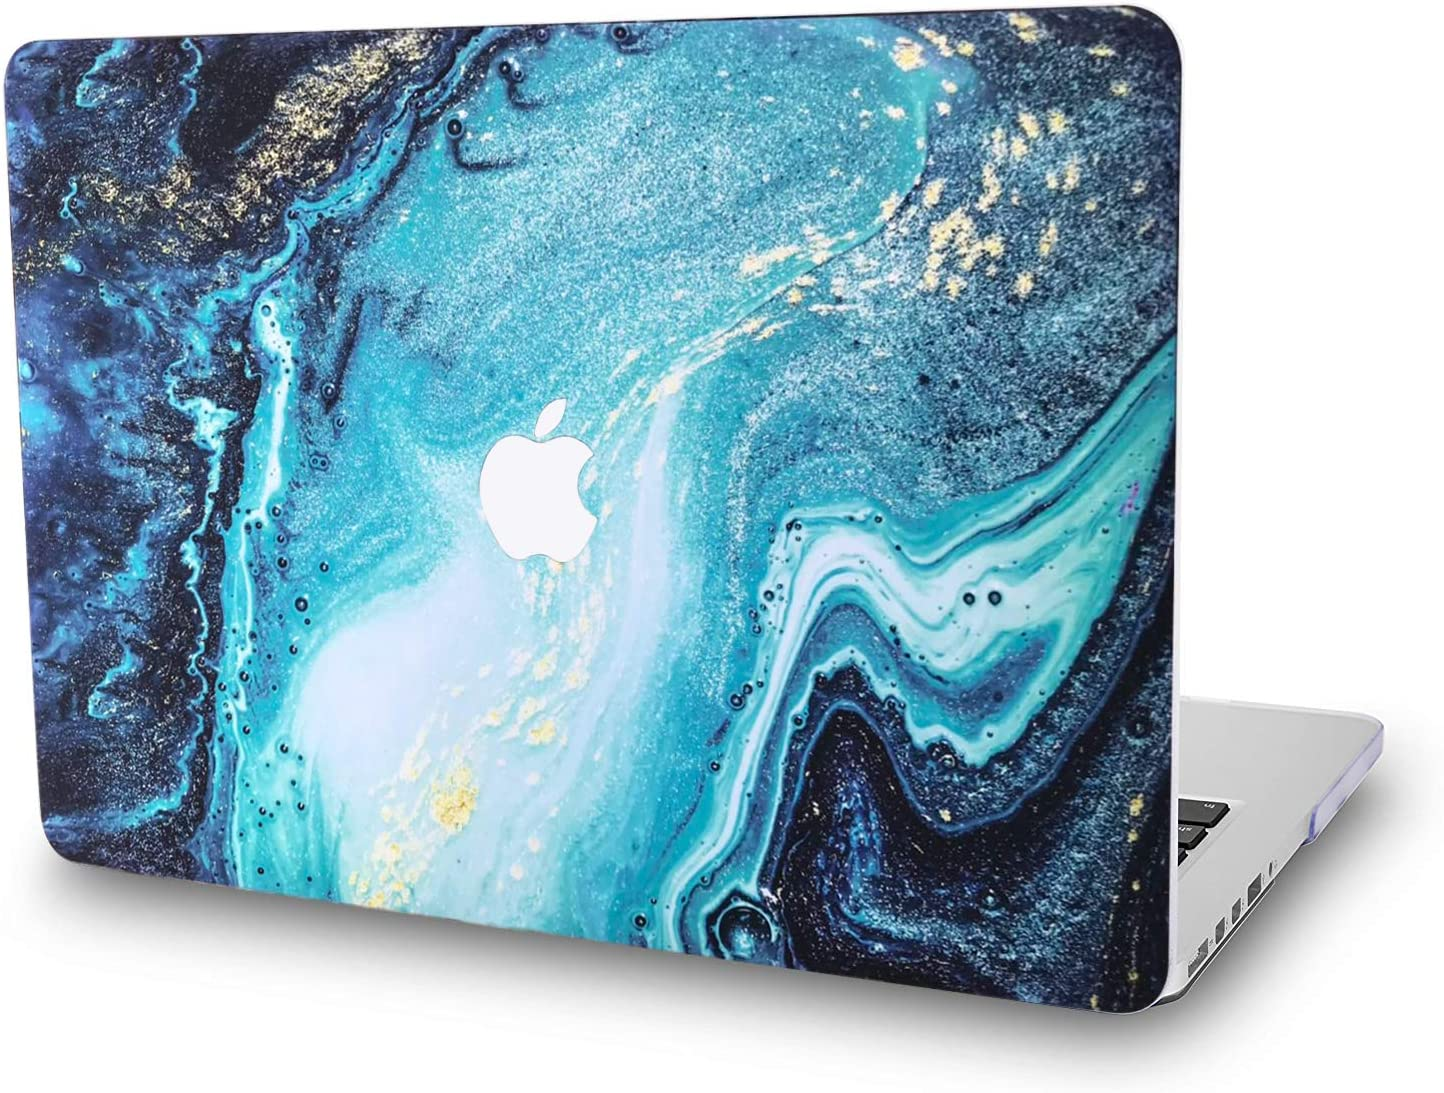 Hard Case Compatible with MacBook Air 11.6 Inch Model A1465/A1370 - L2W Laptop Computers Accessories Plastic Smooth Print View Design Protective Pattern Cover,Riverbed